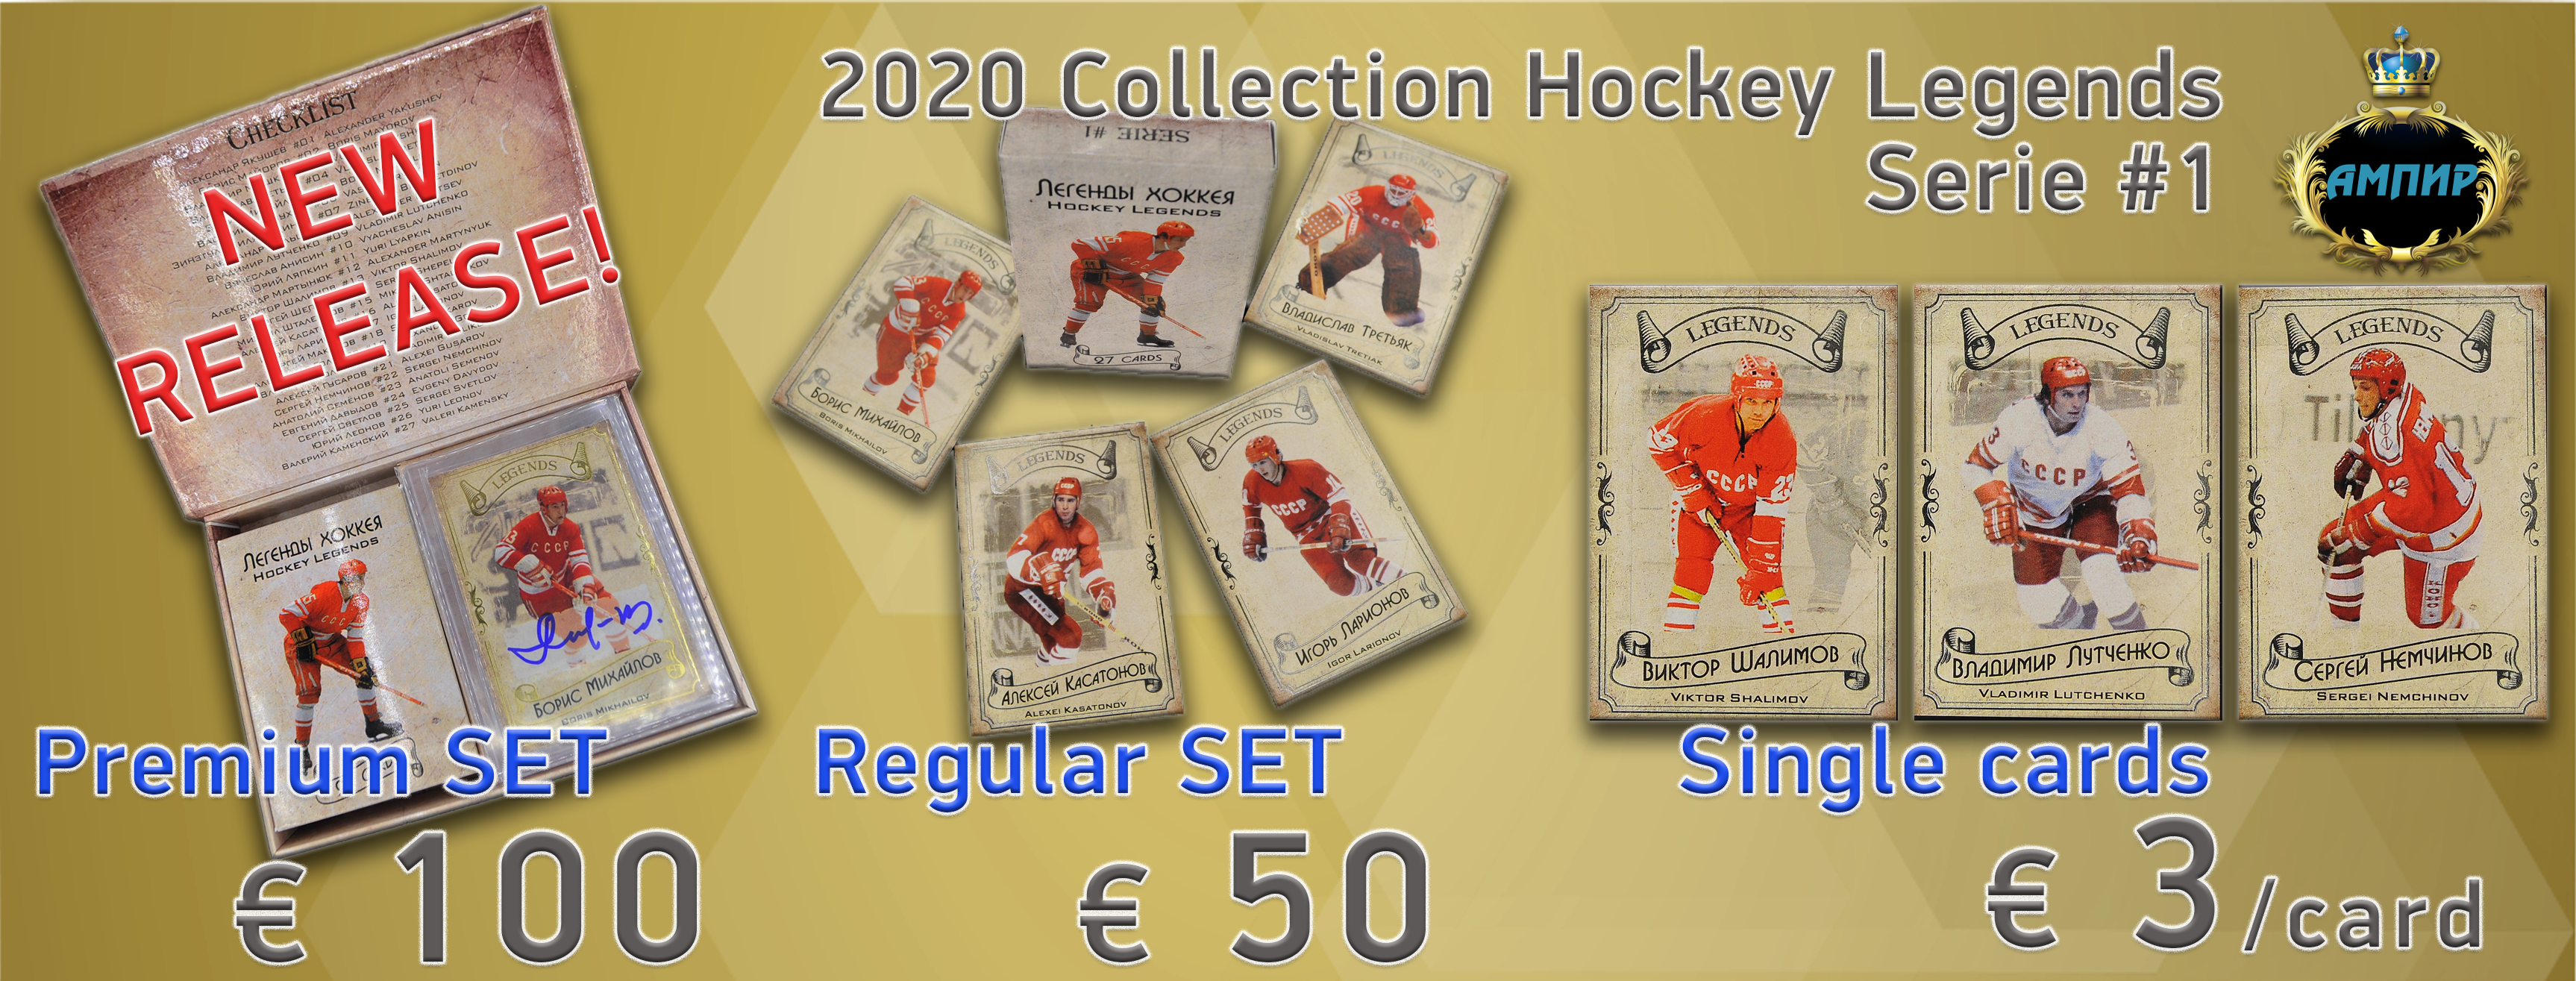 2020 AMPIR Hockey Legends Serie #1